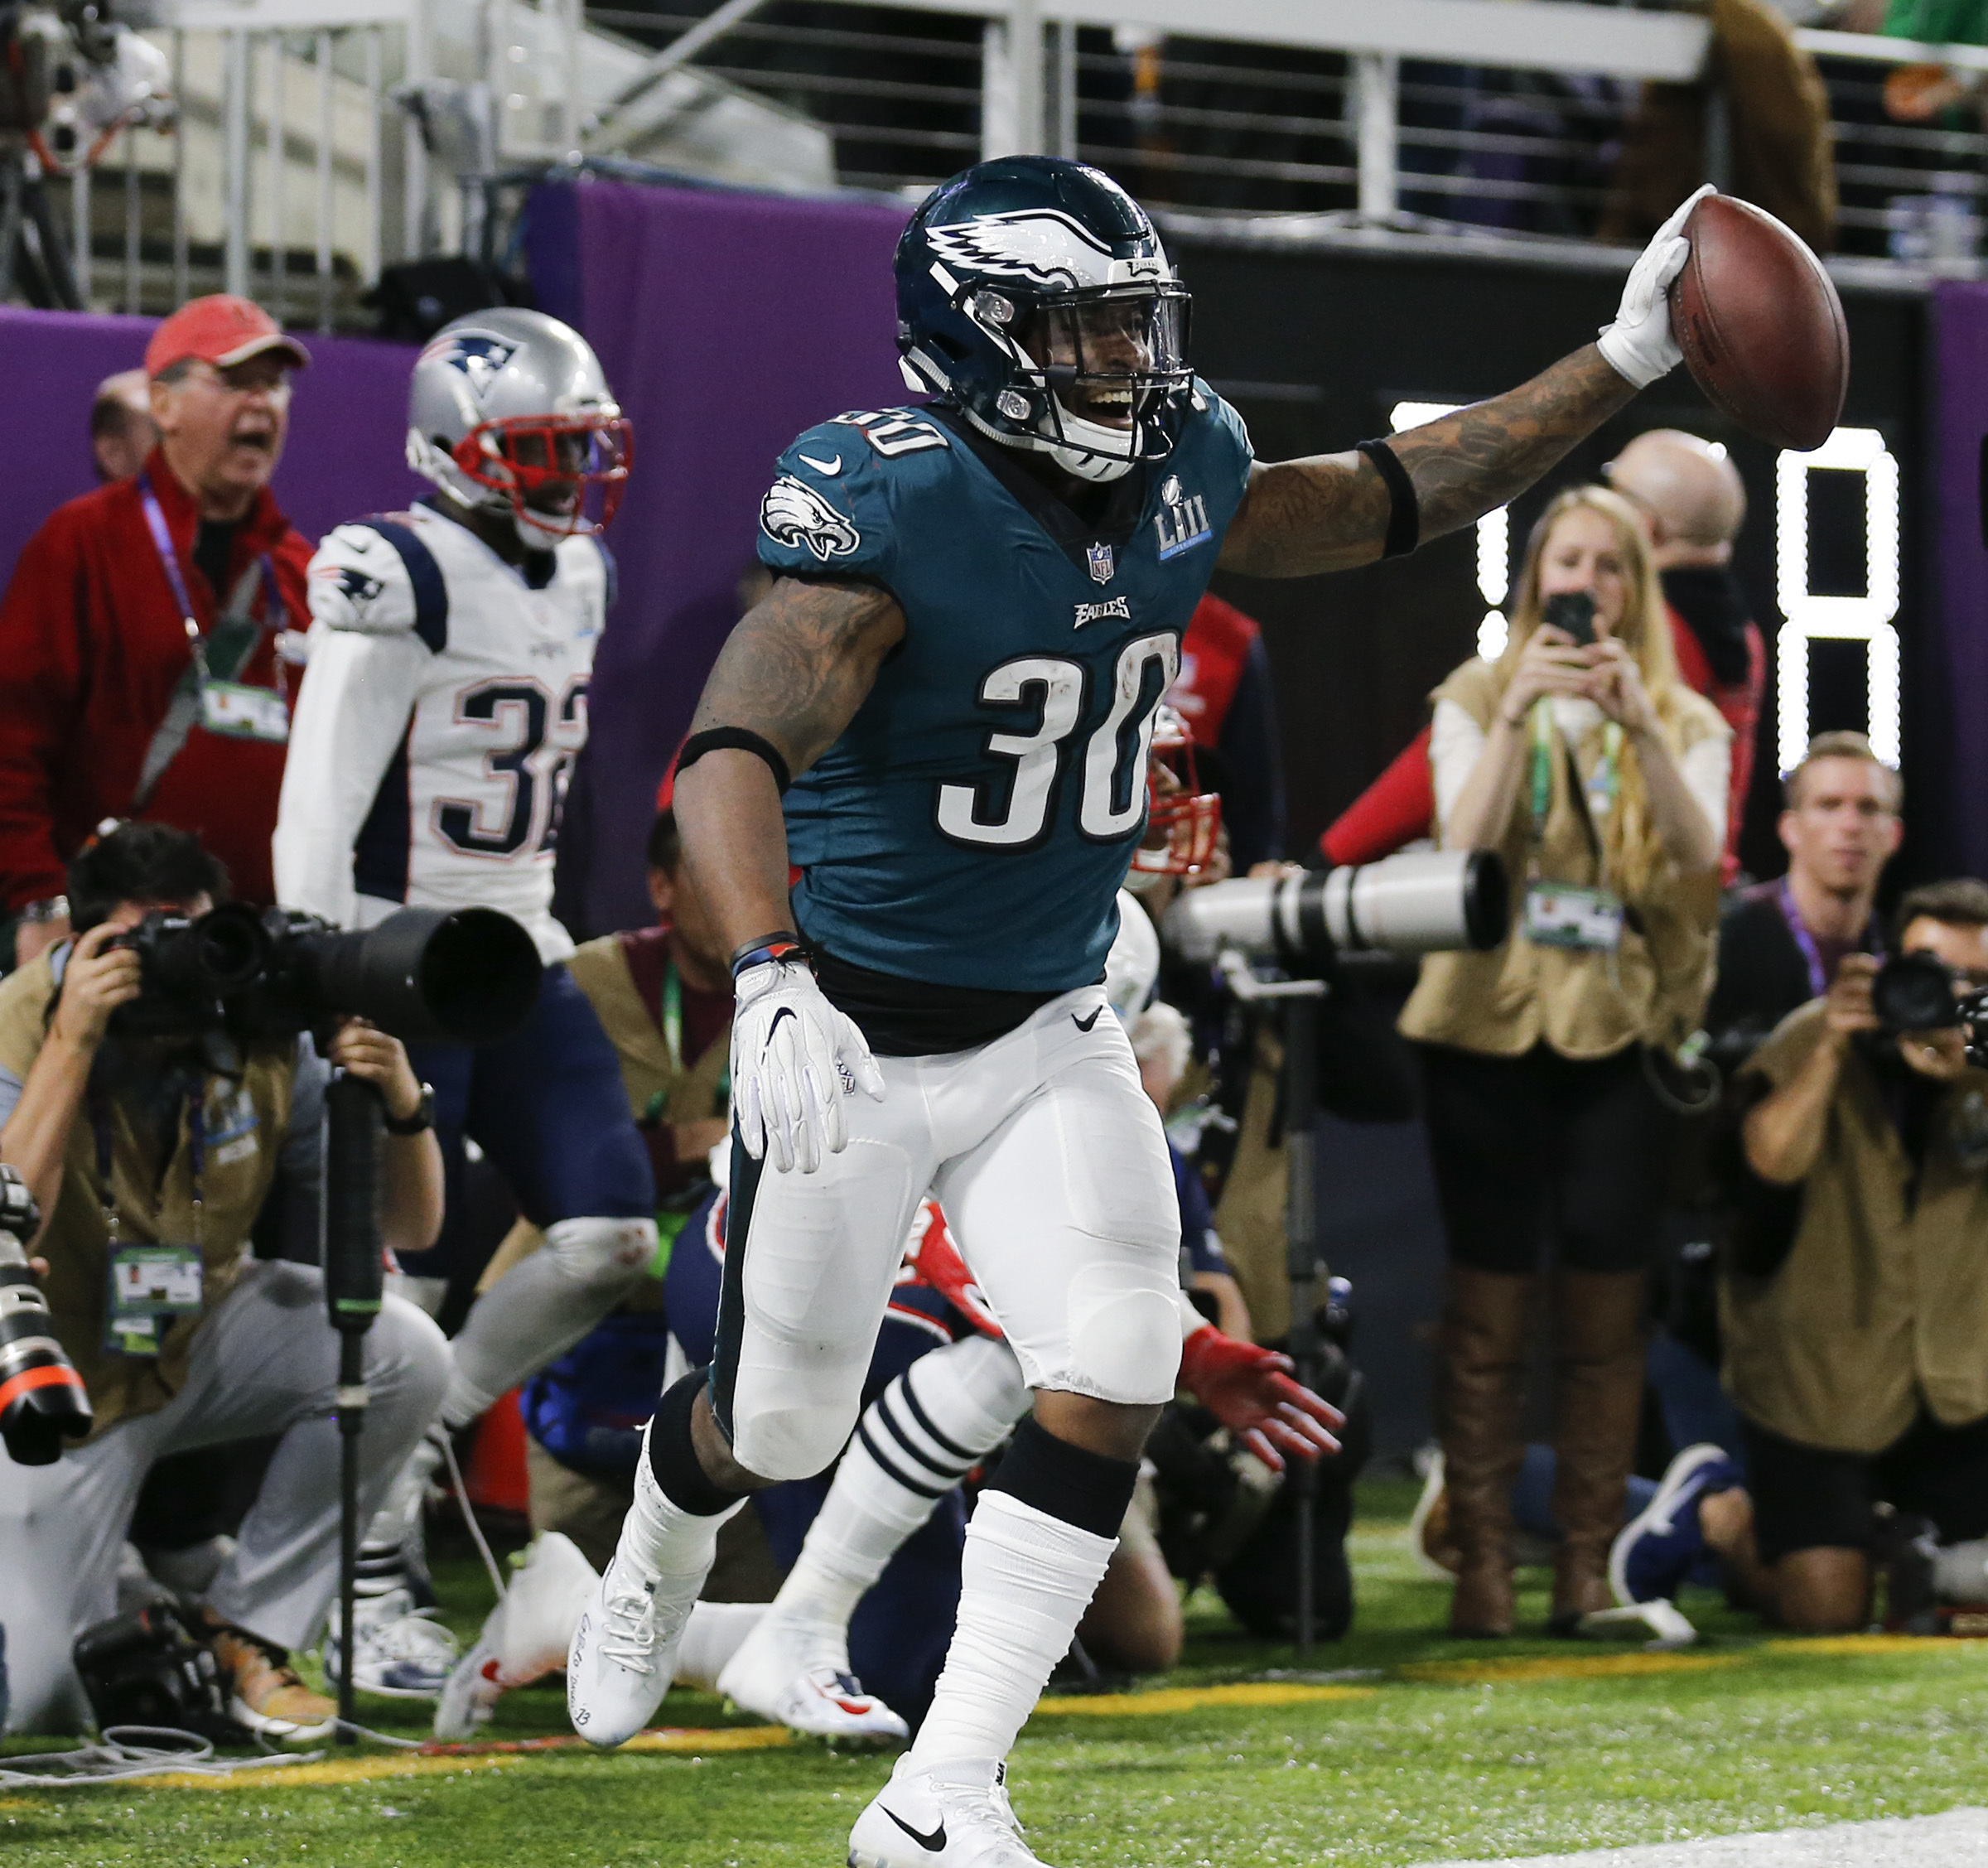 Corey Clement had his national coming-out party in Super Bowl LII, catching four passes for 100 yards and a key touchdown.